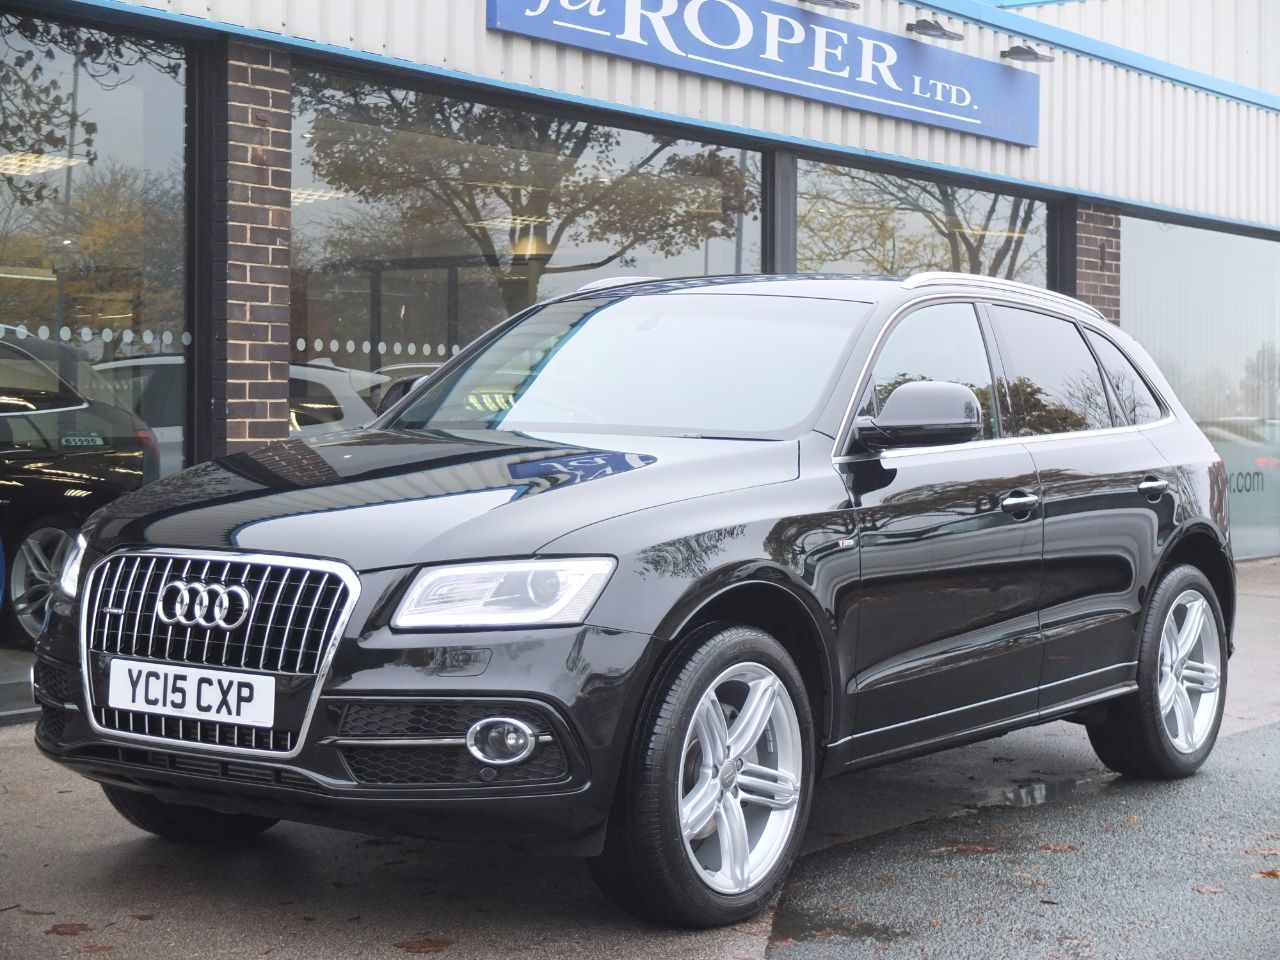 Audi Q5 2.0 TDI quattro S Line Plus S Tronic 177ps (Tech Pack) Estate Diesel Mythos Black MetallicAudi Q5 2.0 TDI quattro S Line Plus S Tronic 177ps (Tech Pack) Estate Diesel Mythos Black Metallic at fa Roper Ltd Bradford